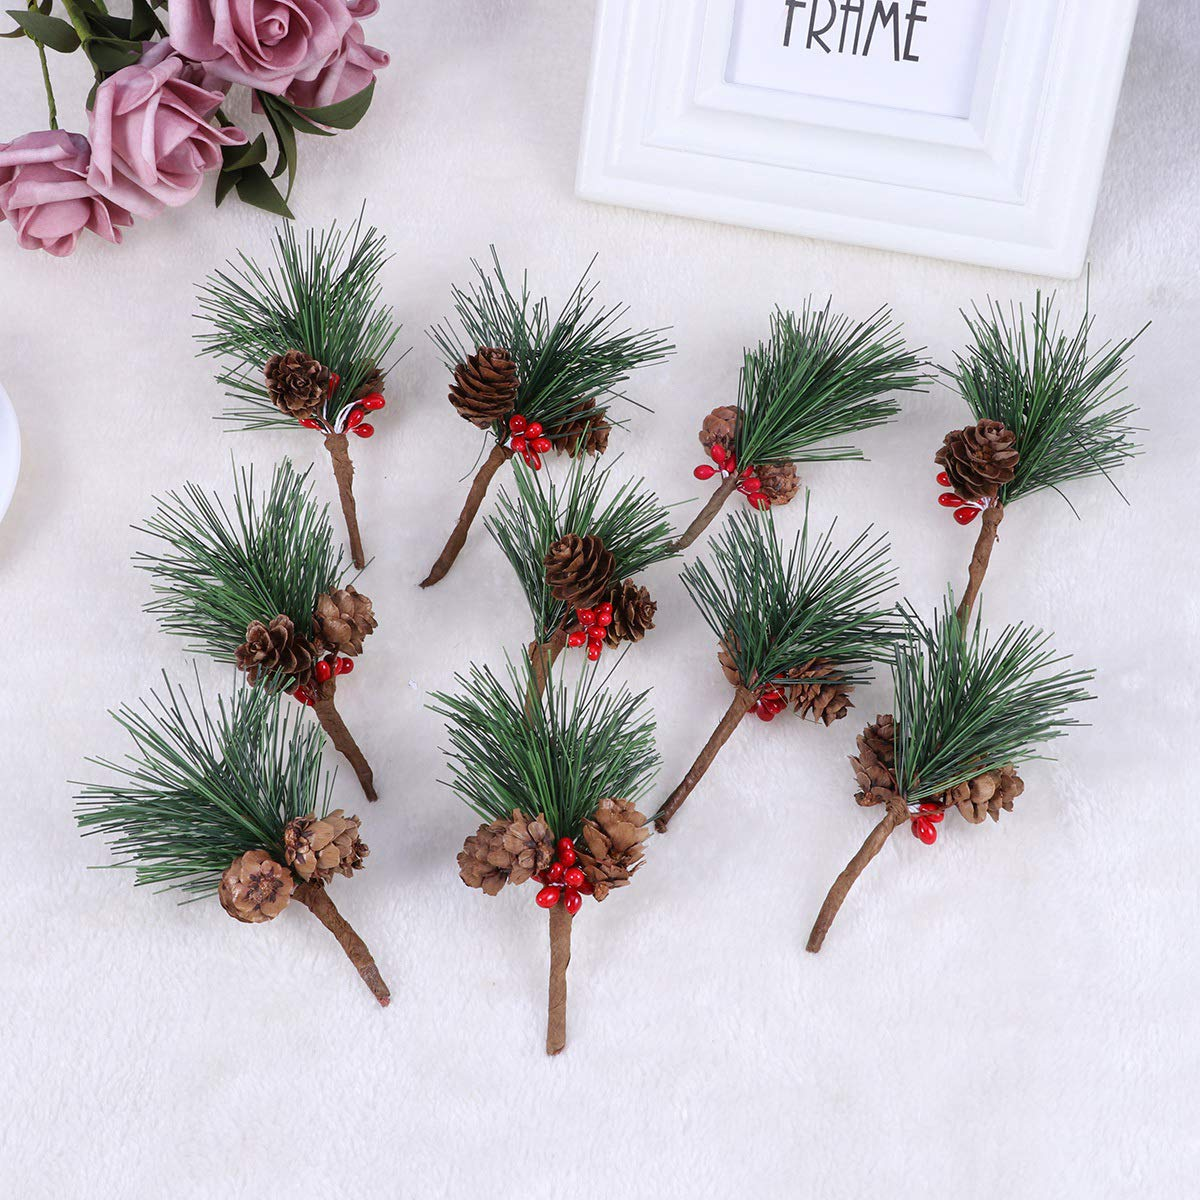 HEALIFTY 12pcs Small Artificial Pine Picks for Christmas Flower Arrangements Wreaths and Holiday Decorations